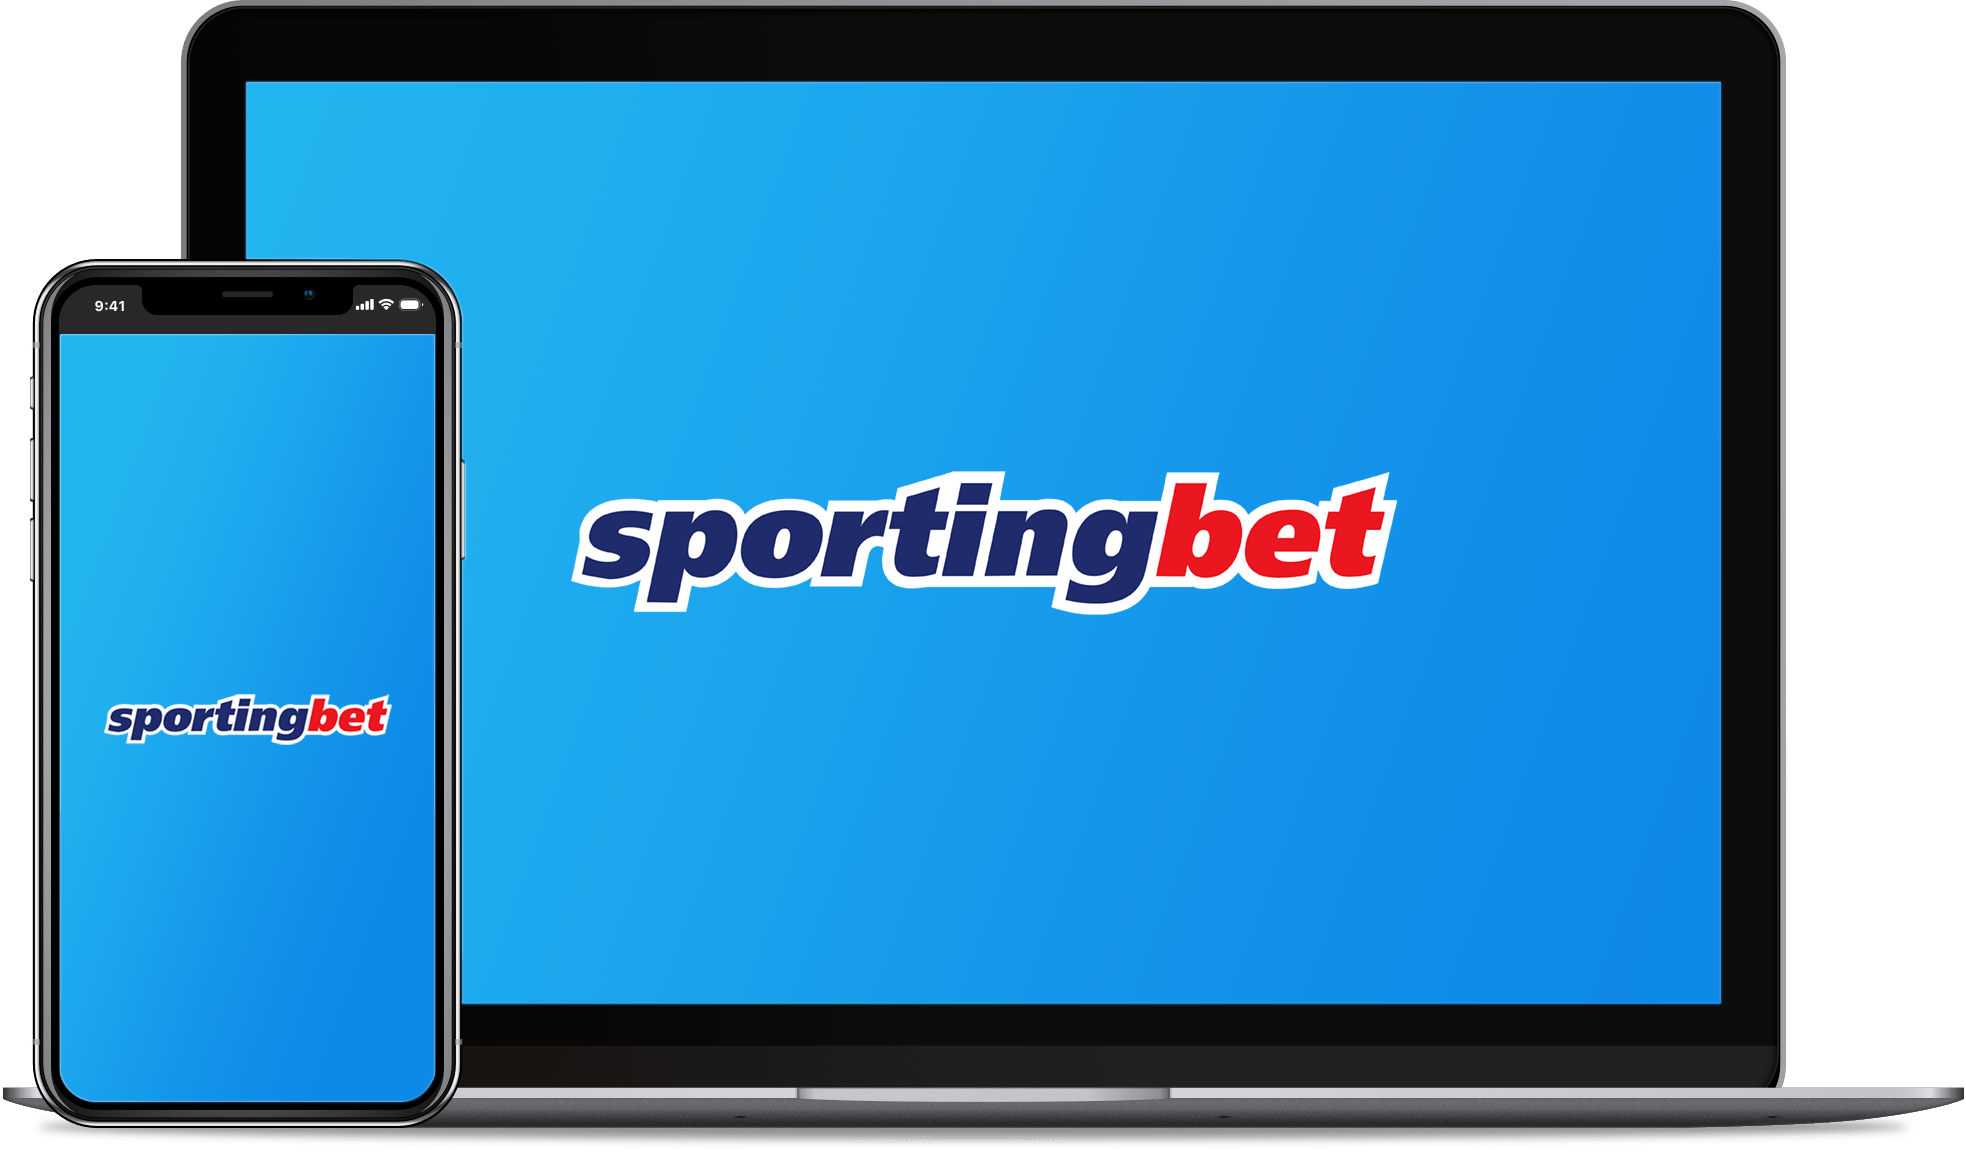 sportingbet mobile betting news